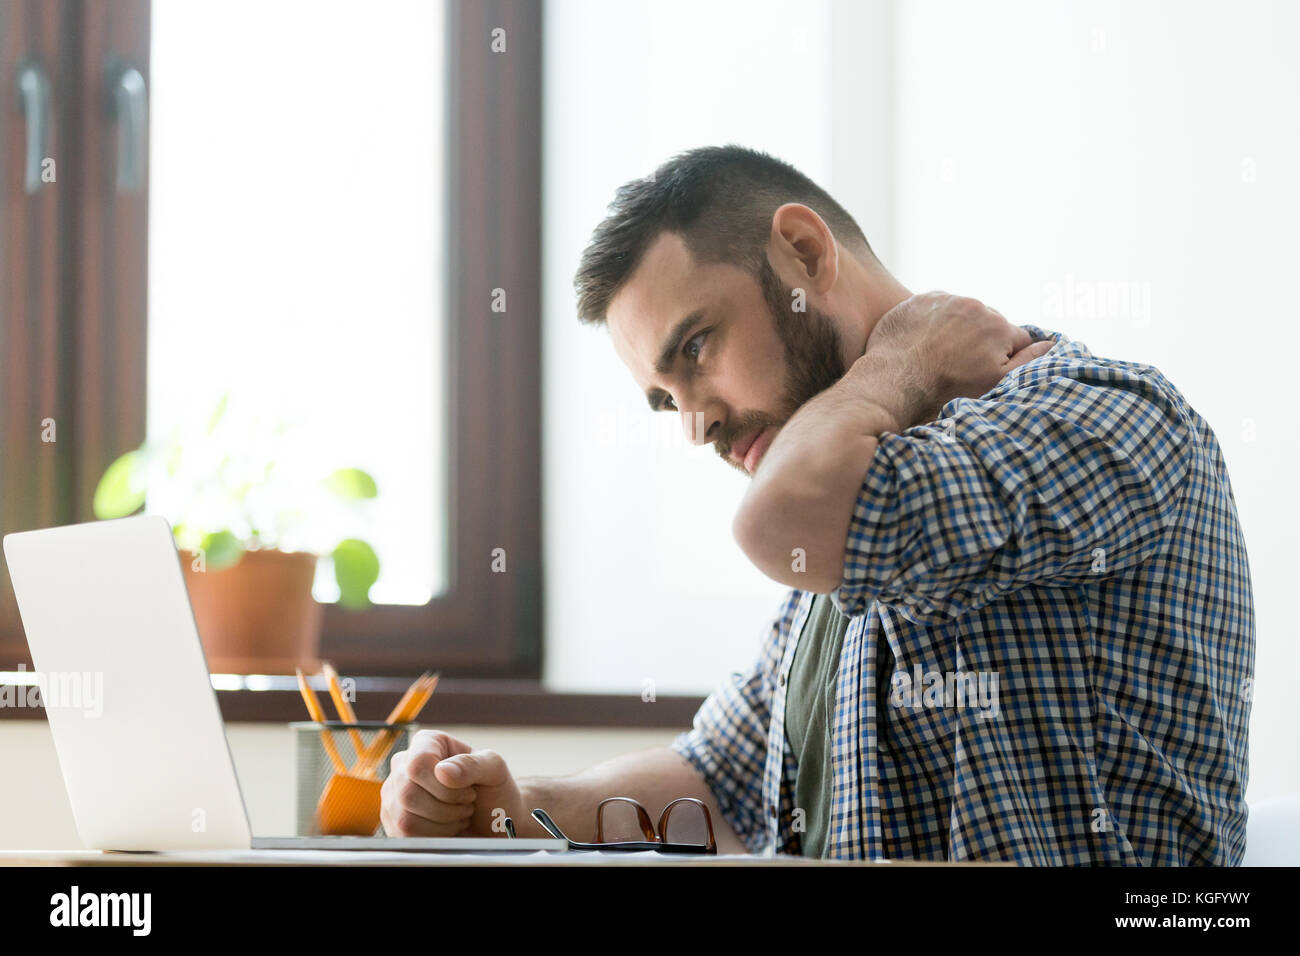 Troubled bearded man massages aching neck with a pained expression, working on laptop computer, deep in thoughts. - Stock Image